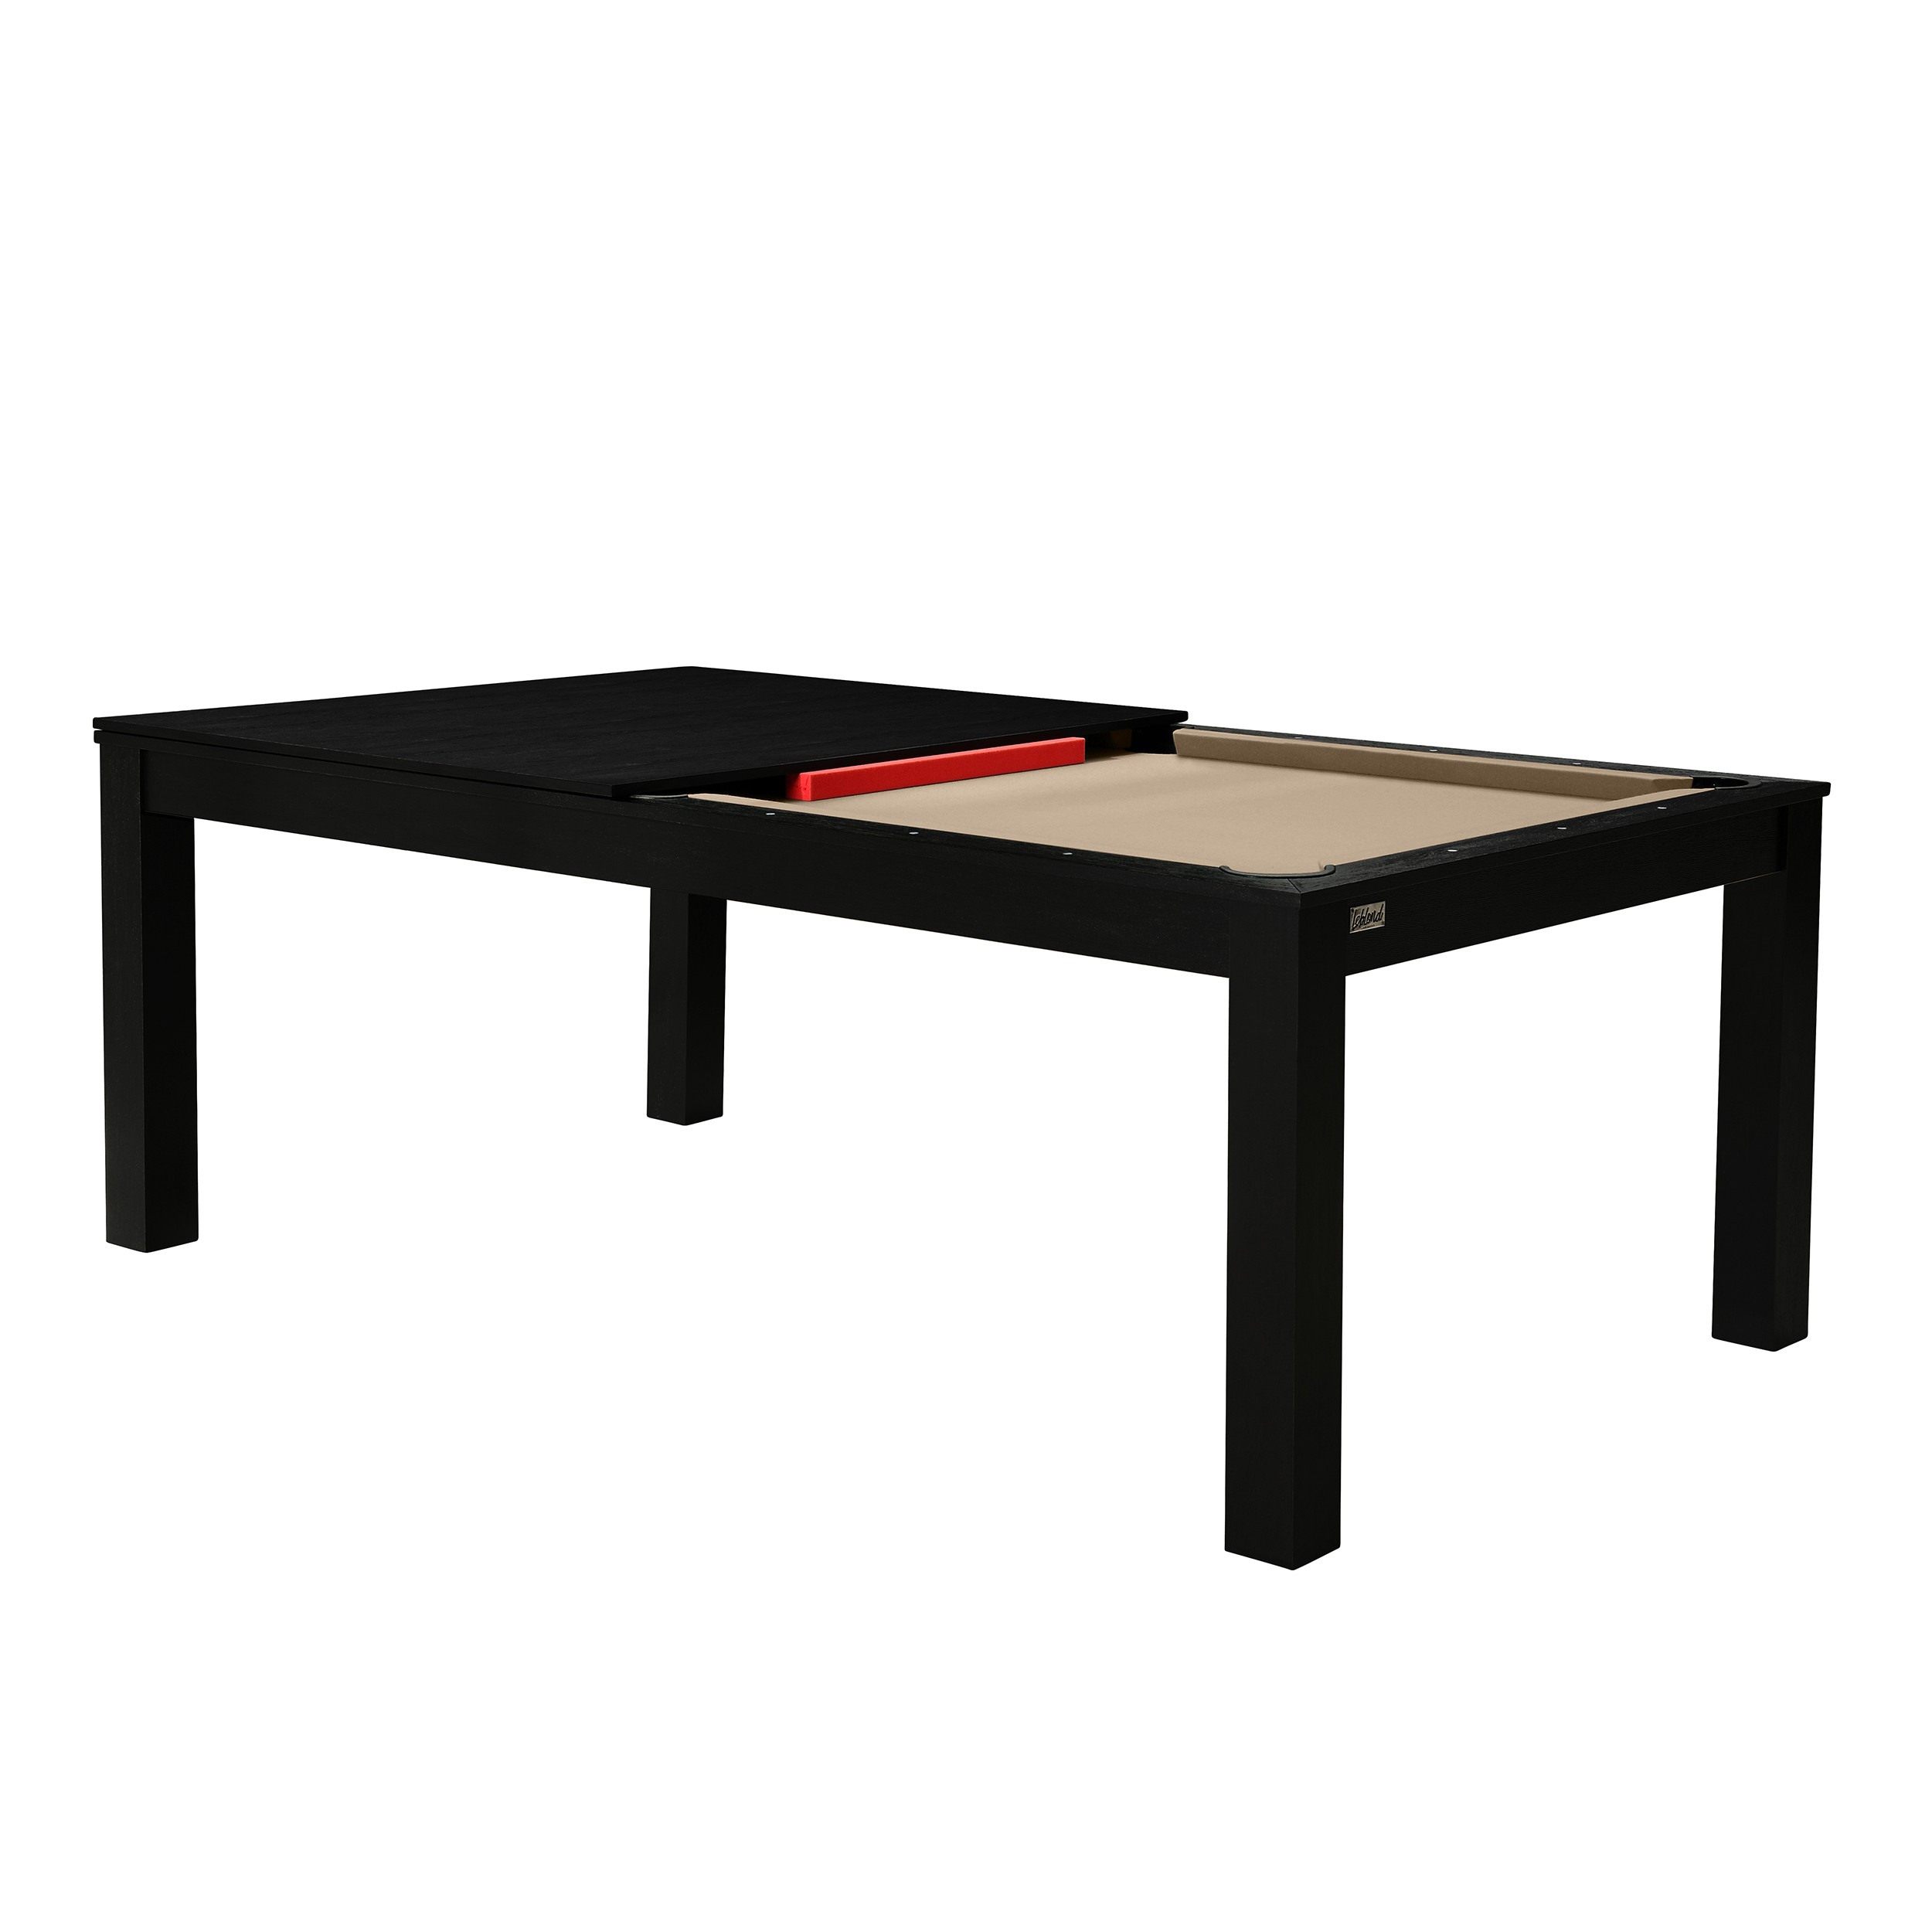 billard table convertible noir tapis beige achetez les. Black Bedroom Furniture Sets. Home Design Ideas